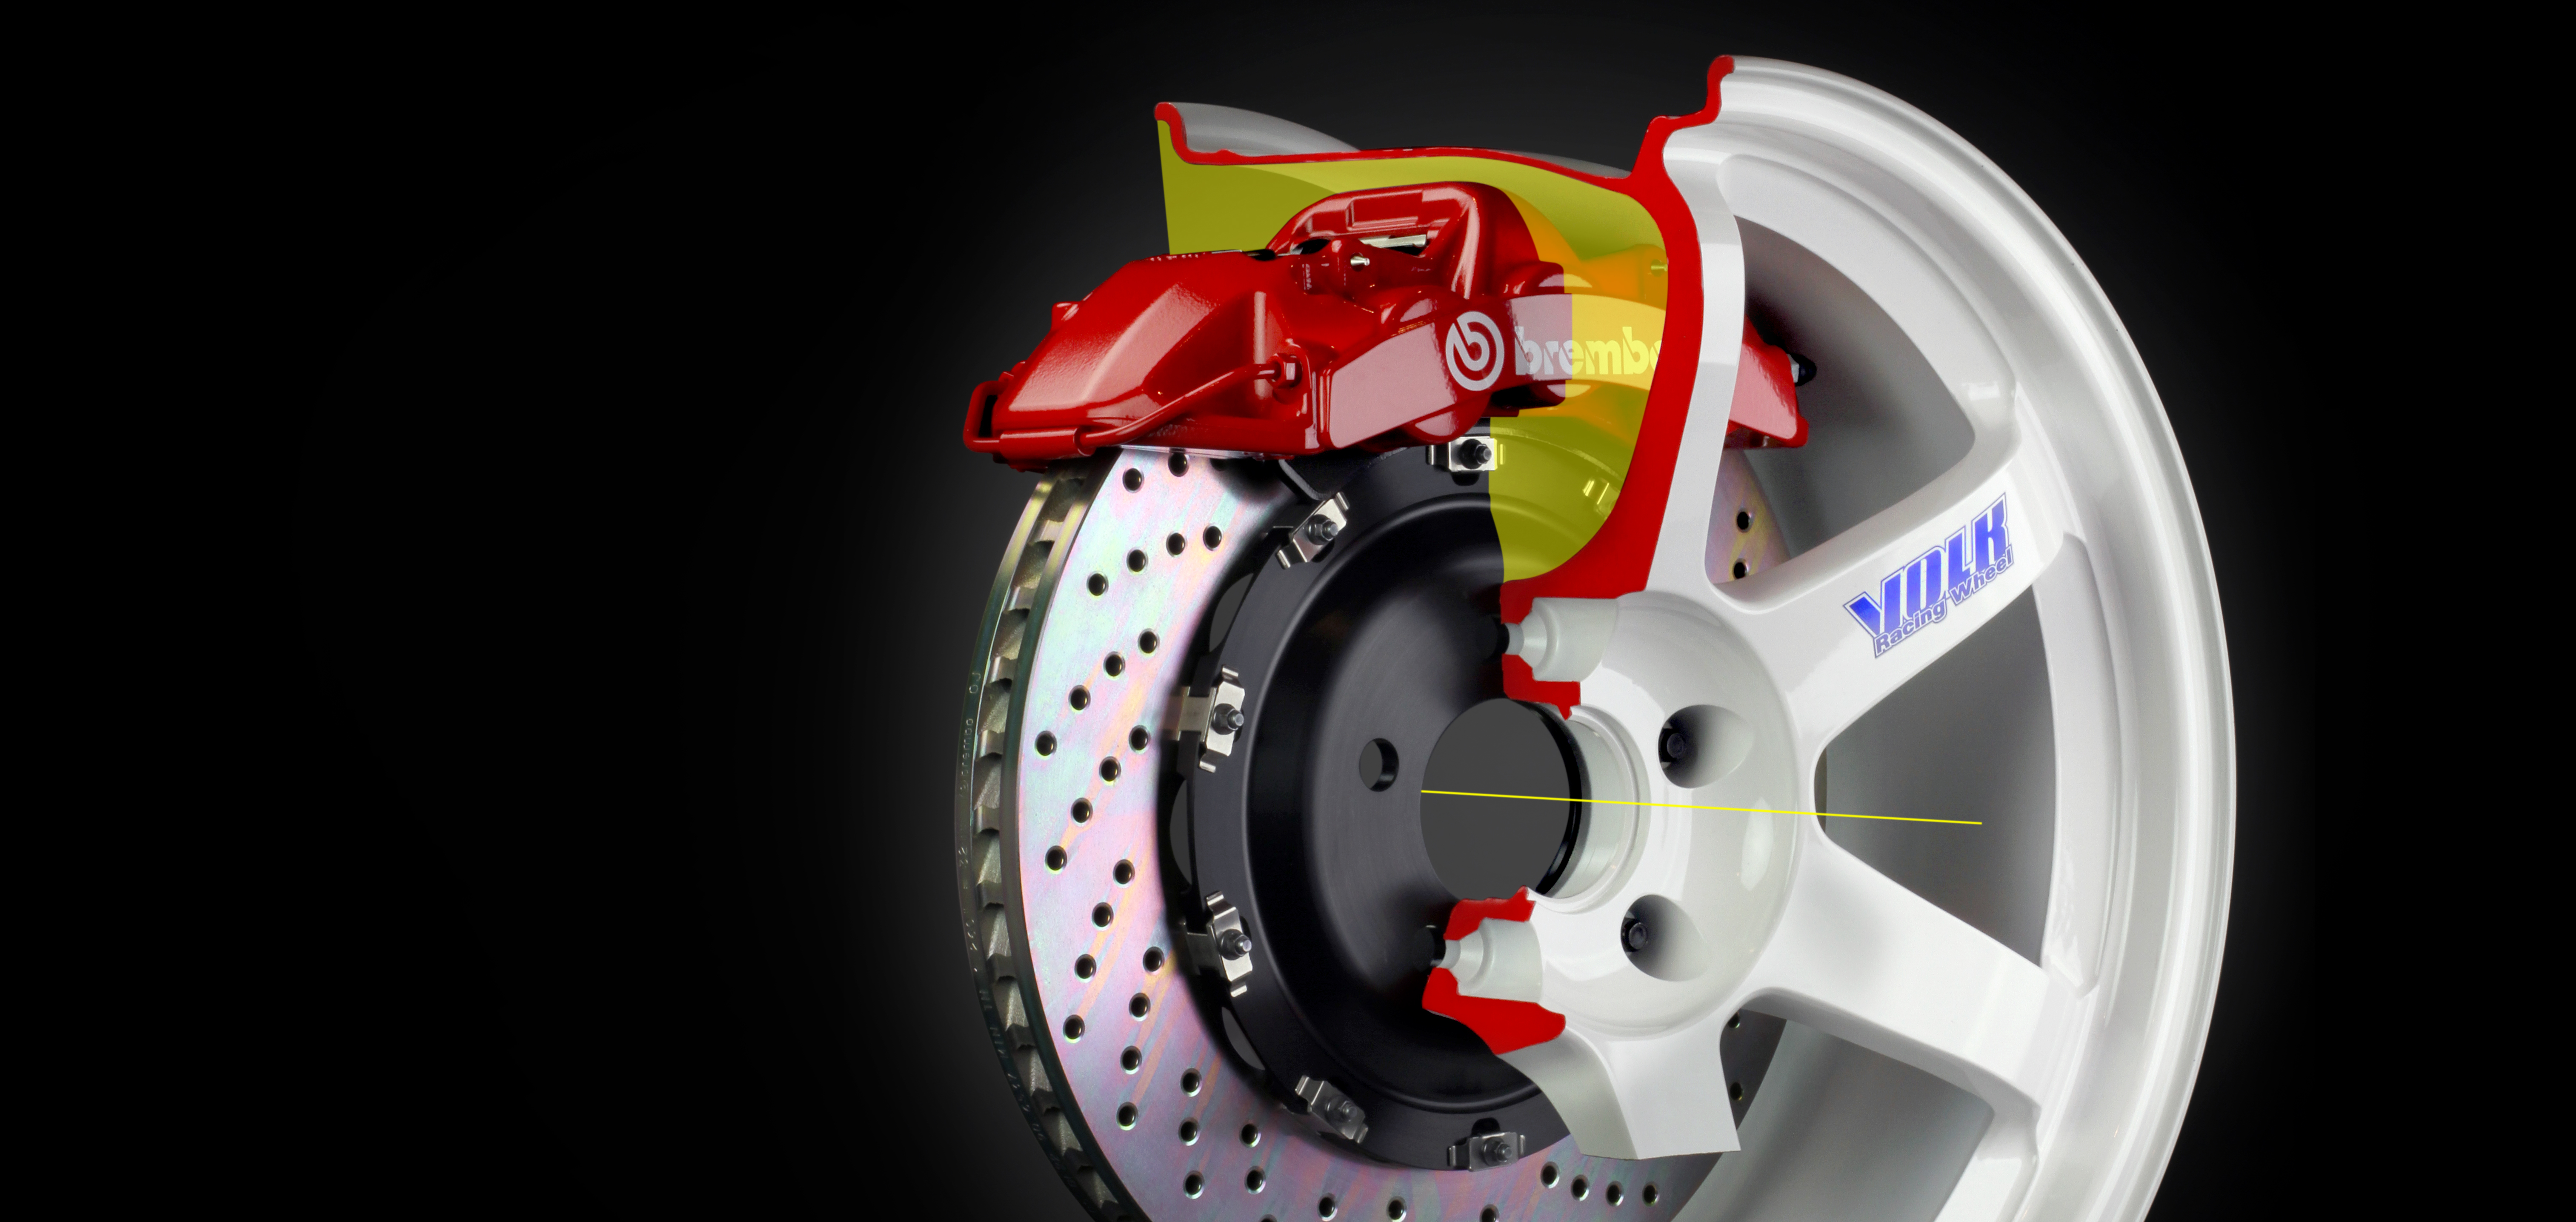 How to Measure Your Wheel for Proper Brake Clearance